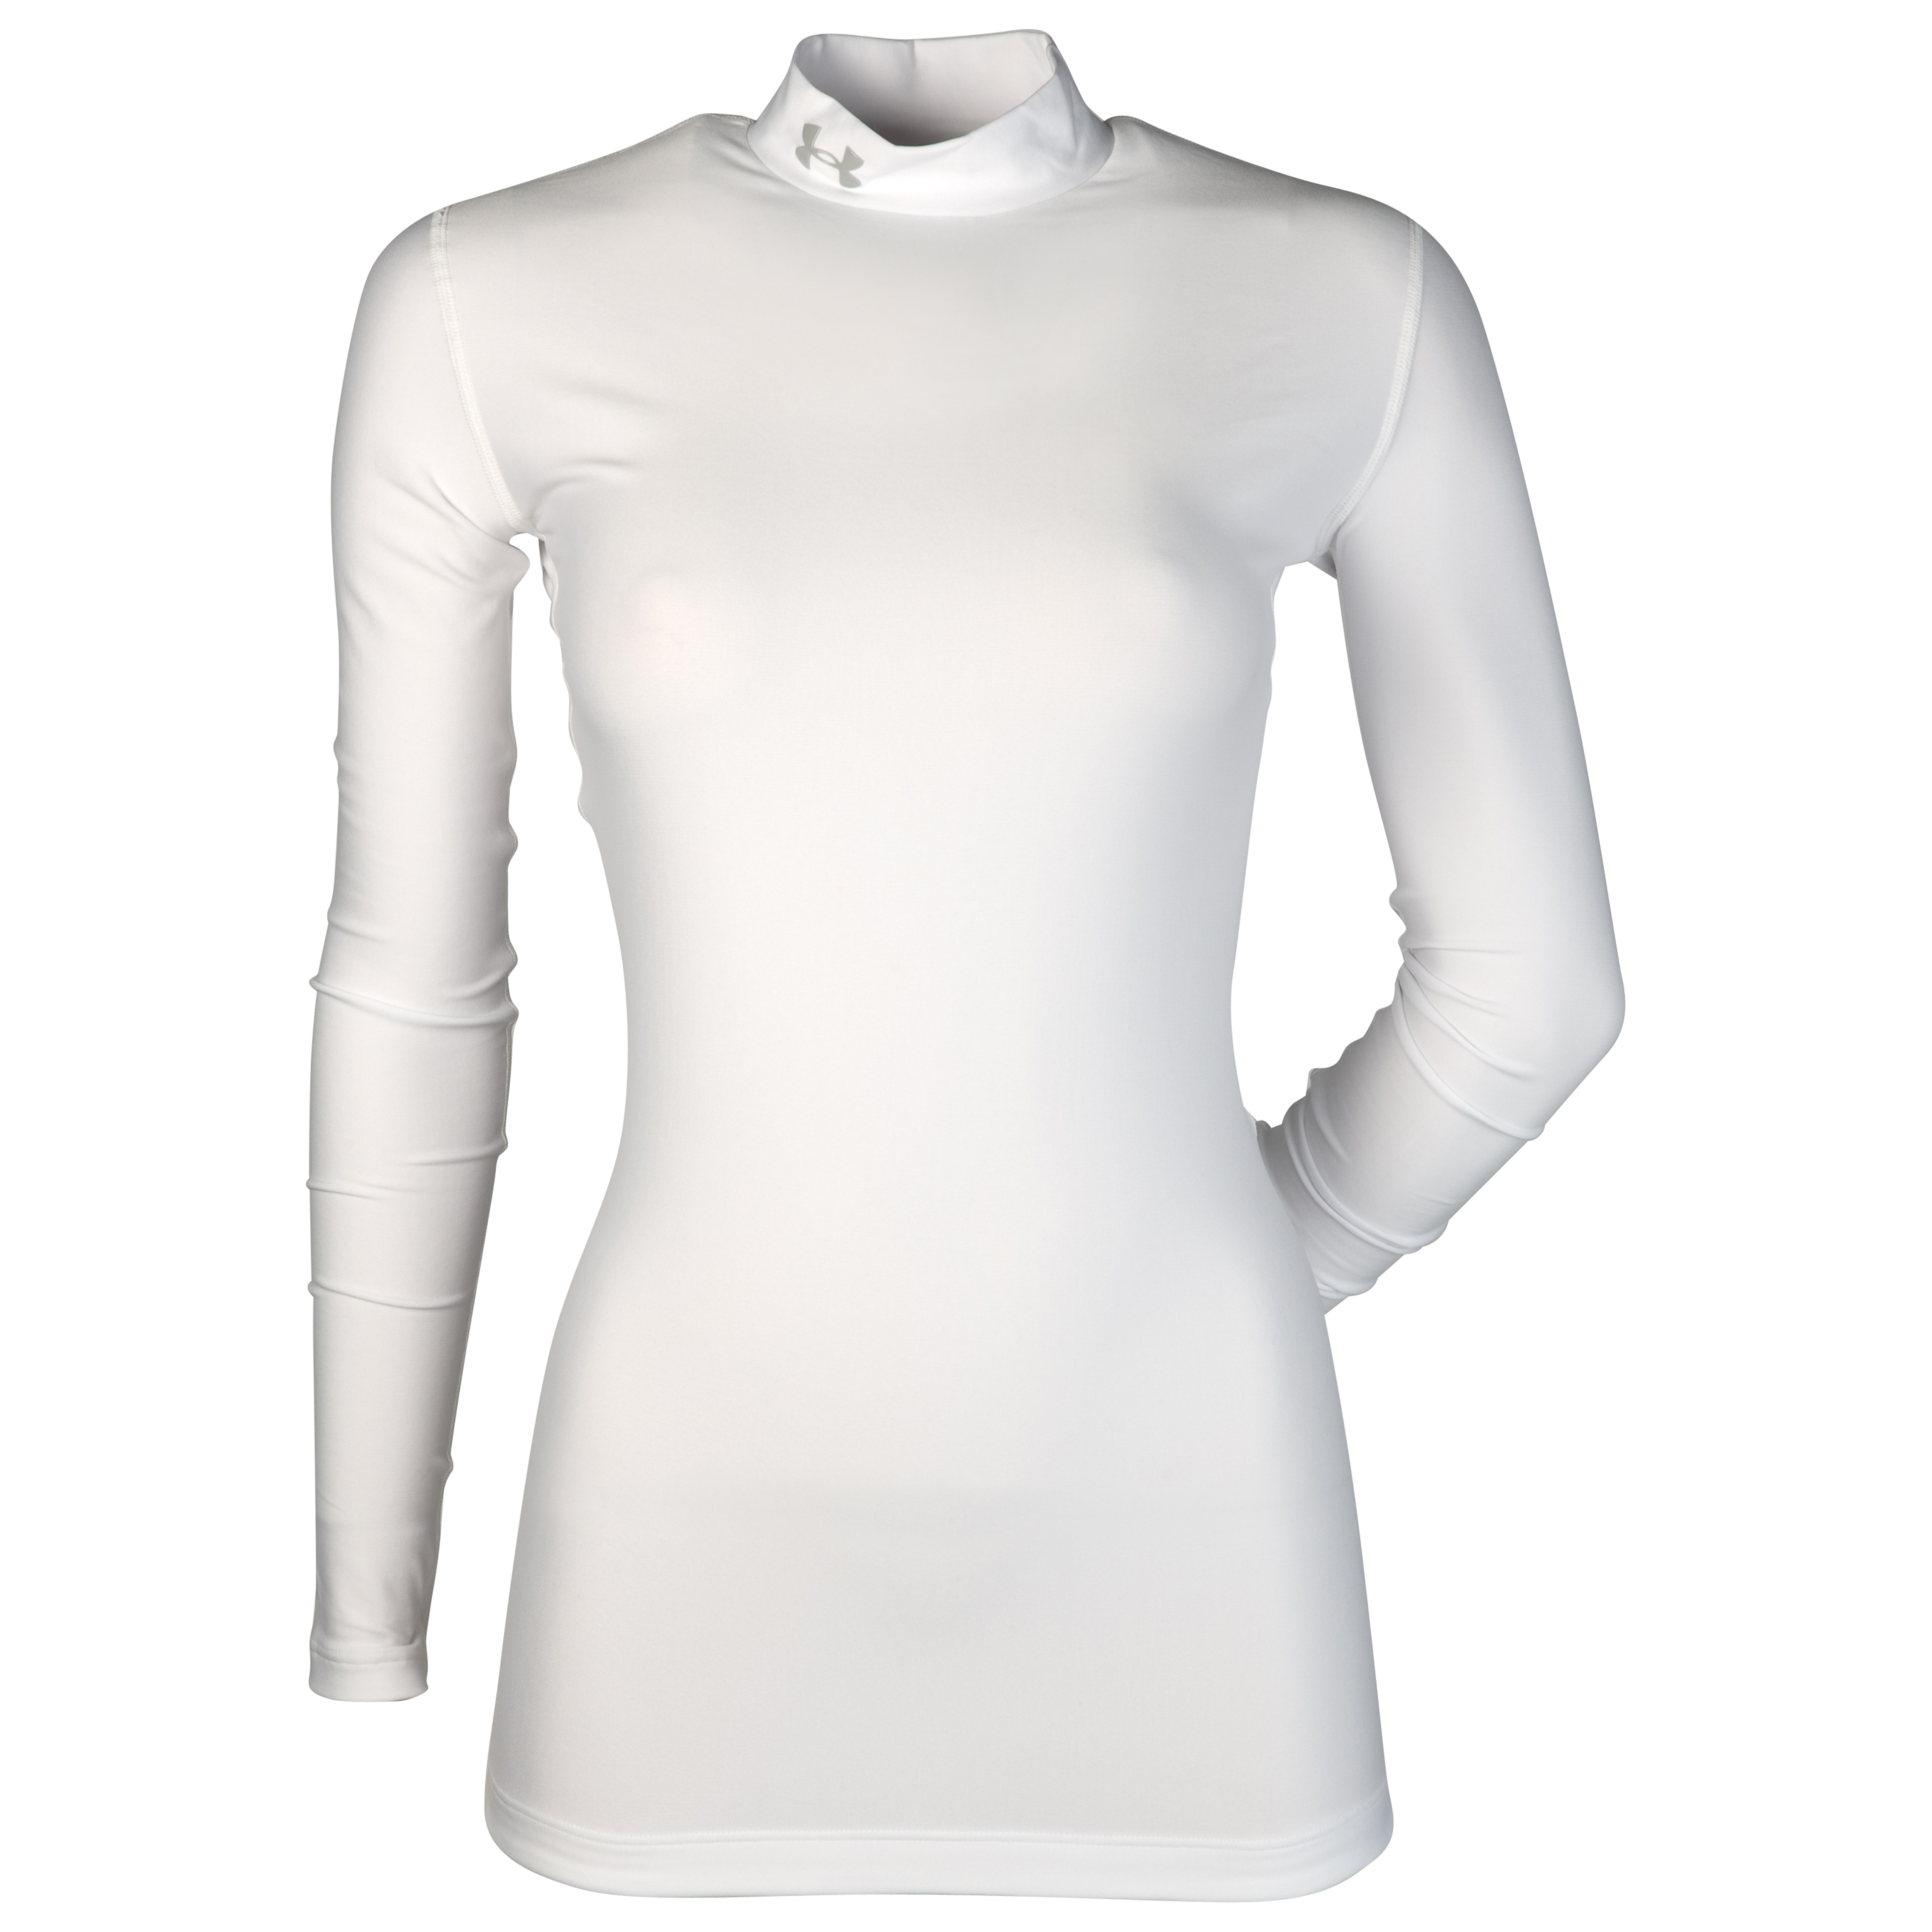 Under Armour Coldgear Compression Mock - White/Aluminium - Womens